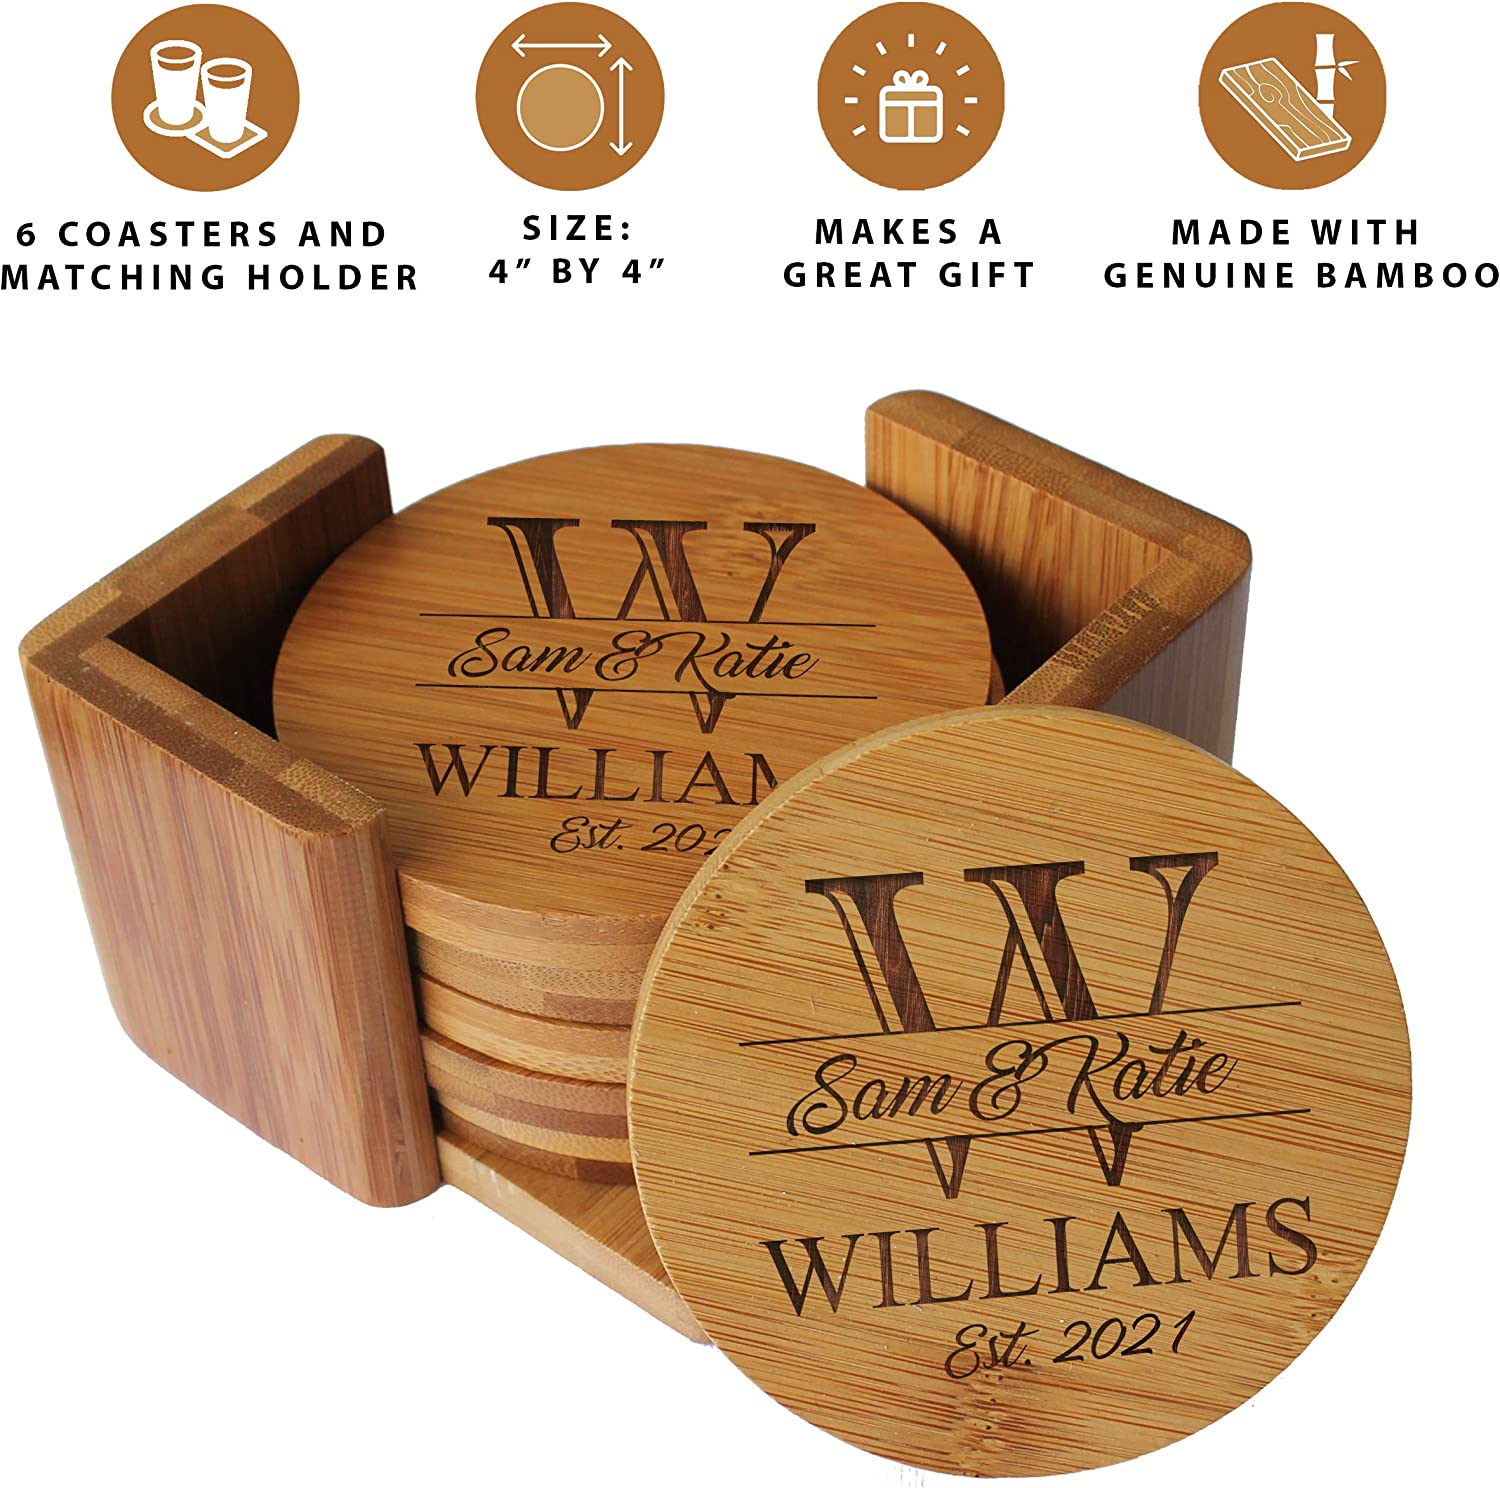 Custom Engraved Bamboo Wood Coasters Personalized Coaster Set For Drinks Weddings Couples With Holder Round Bamboo Kitchen Dining